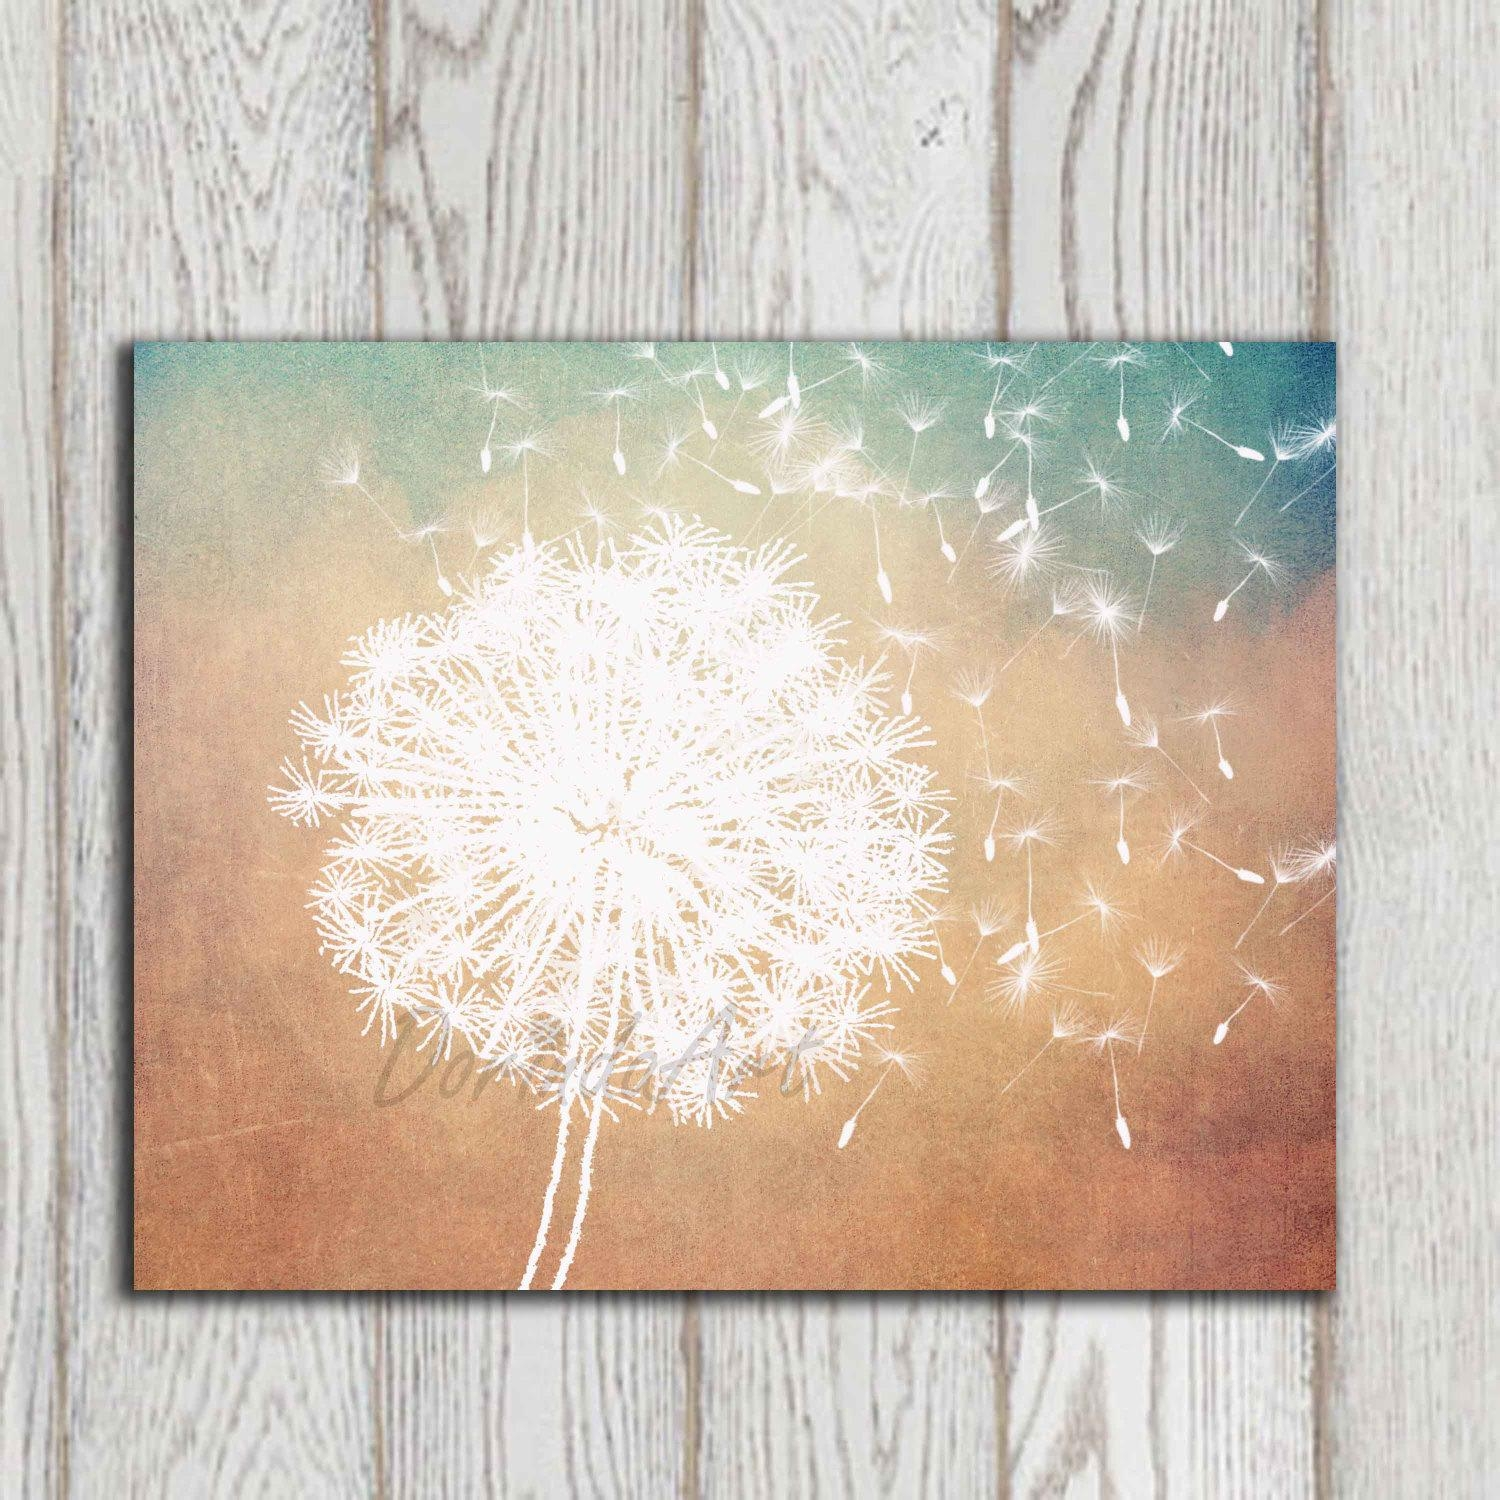 Dandelion Poster Print Dandelion Wall Art Printable Copper With Brown And Turquoise Wall Art (Image 5 of 20)